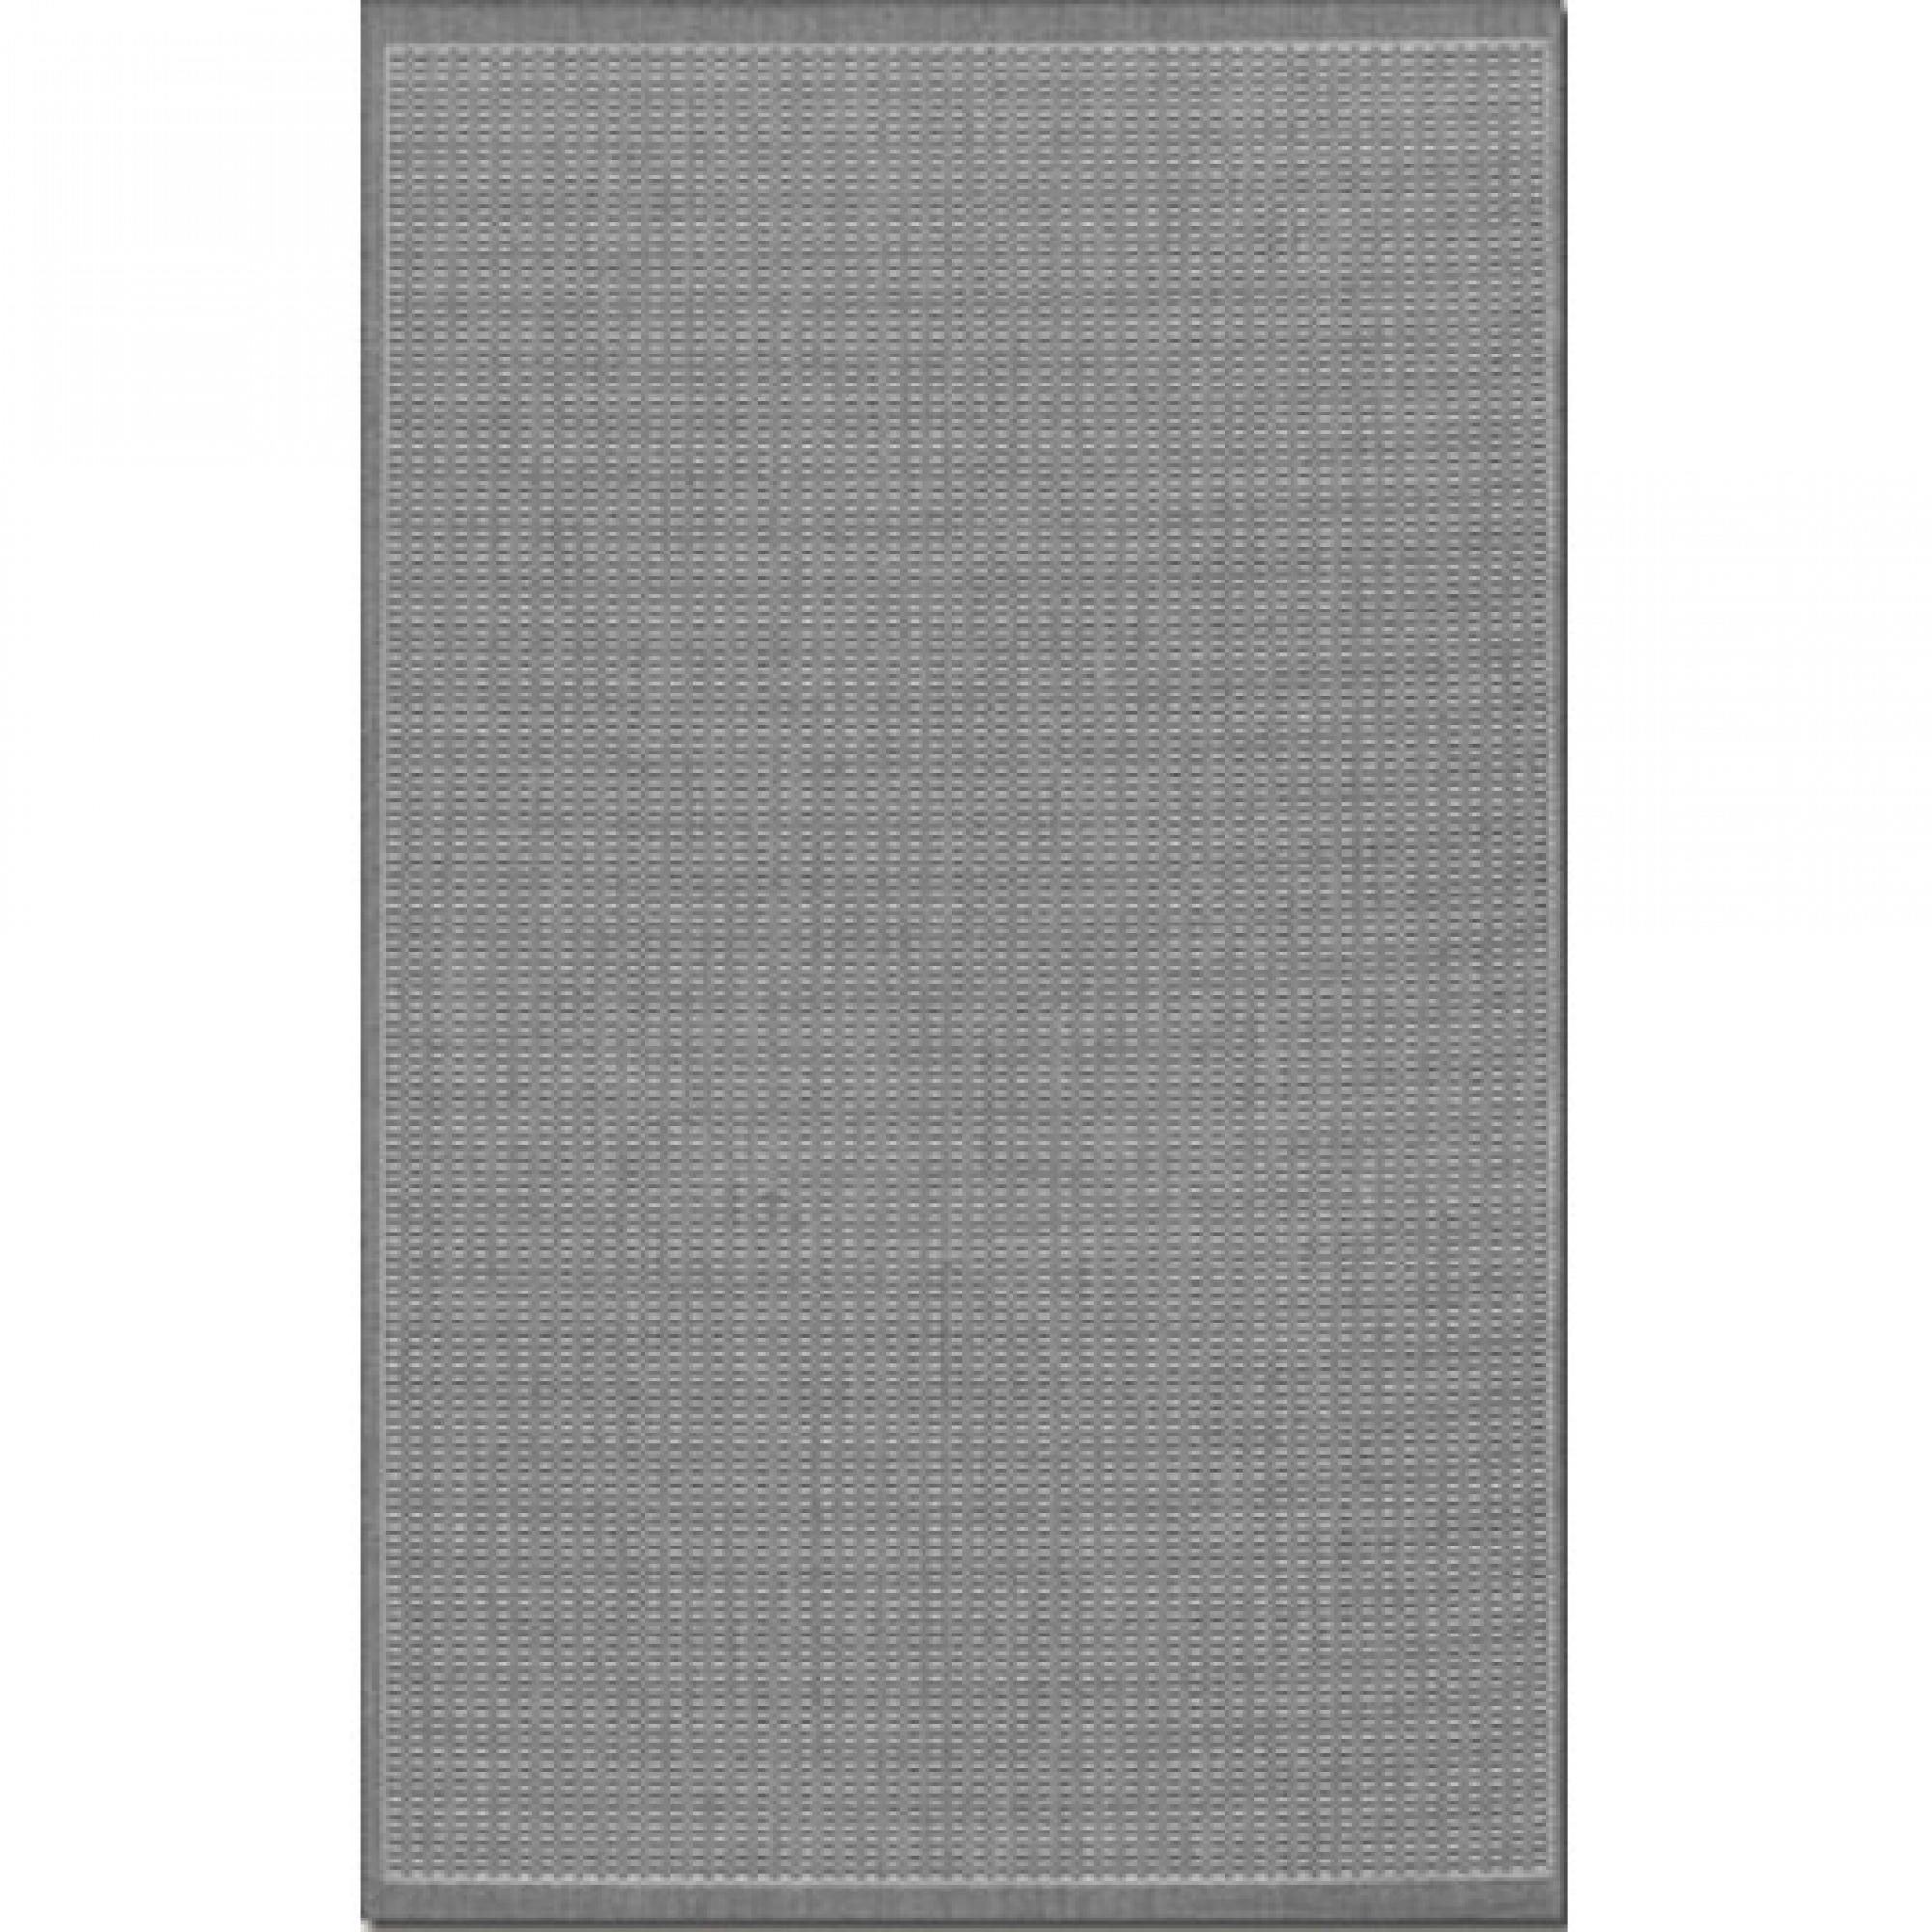 shop recife saddle stitch grey/white outdoor rug (2 ft x 3 ft 7 in